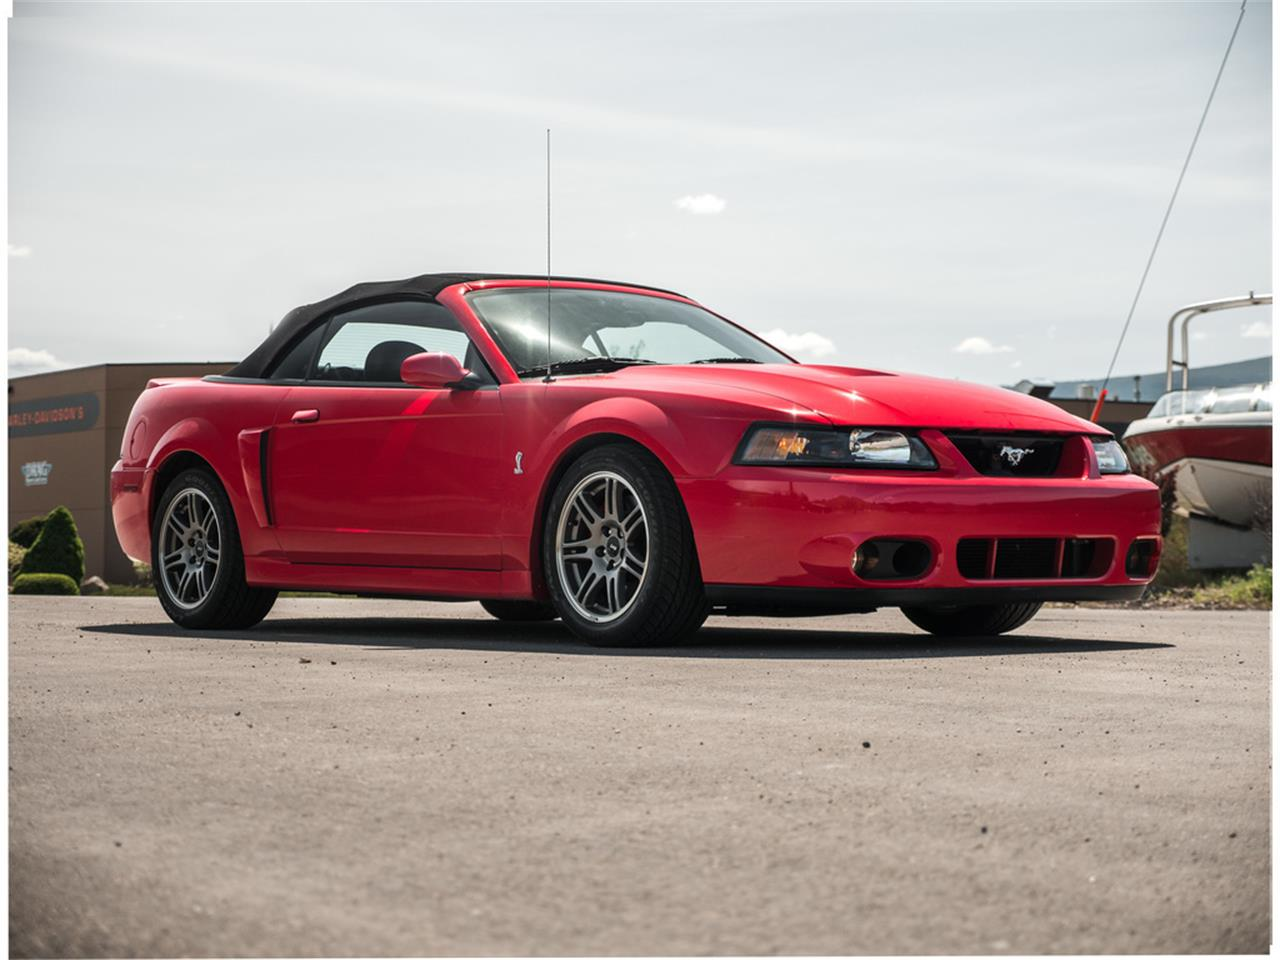 Large Picture of '03 Mustang located in British Columbia - $38,185.00 - Q9QR